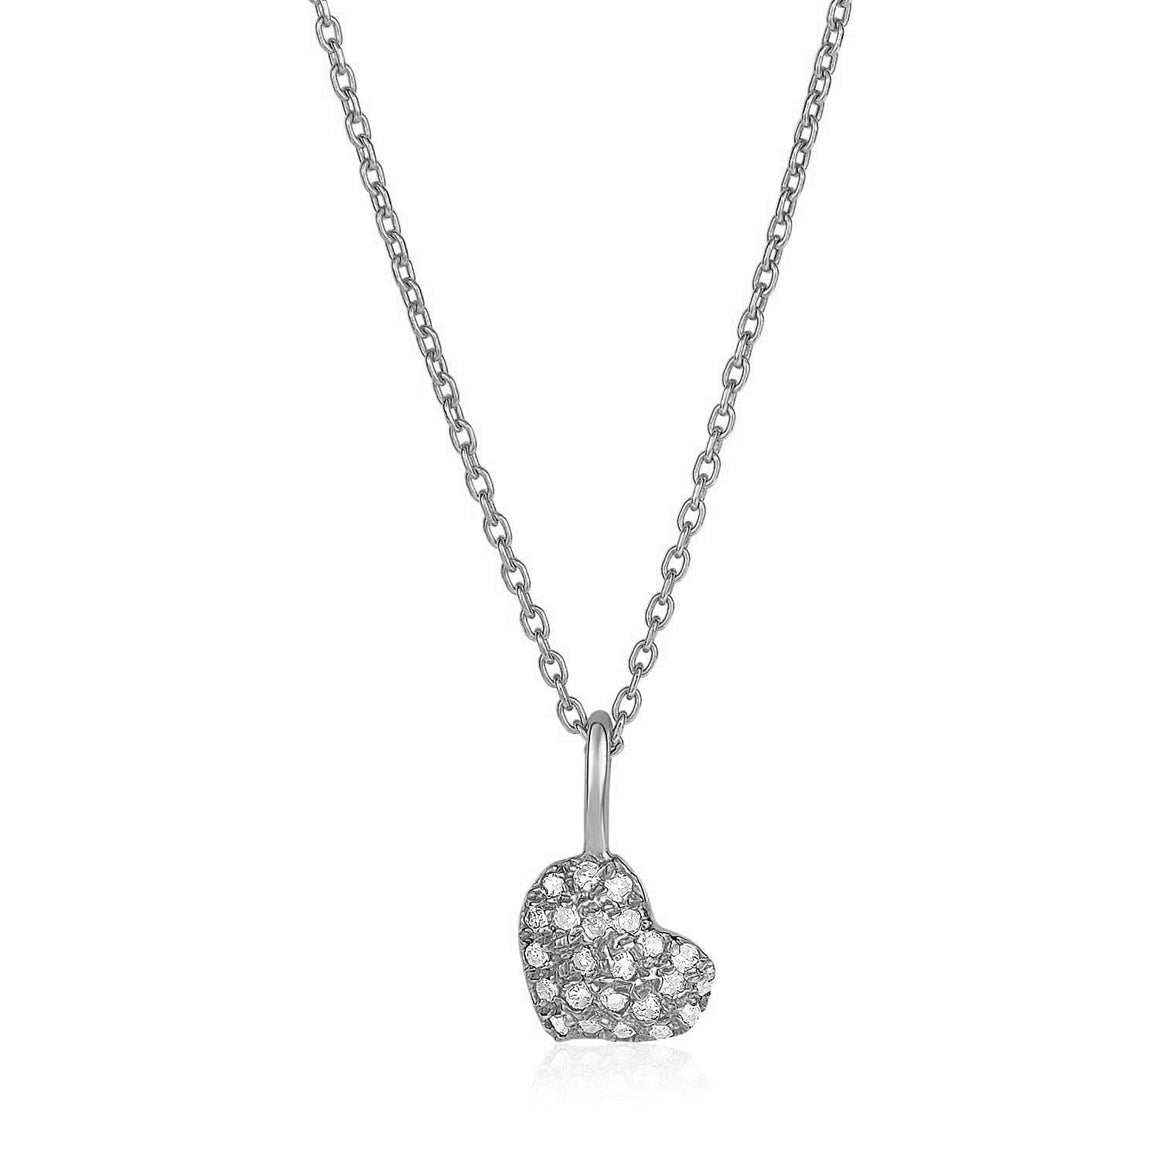 14k White Gold Necklace with Gold and Diamond Heart Pendant (1/10 cttw)